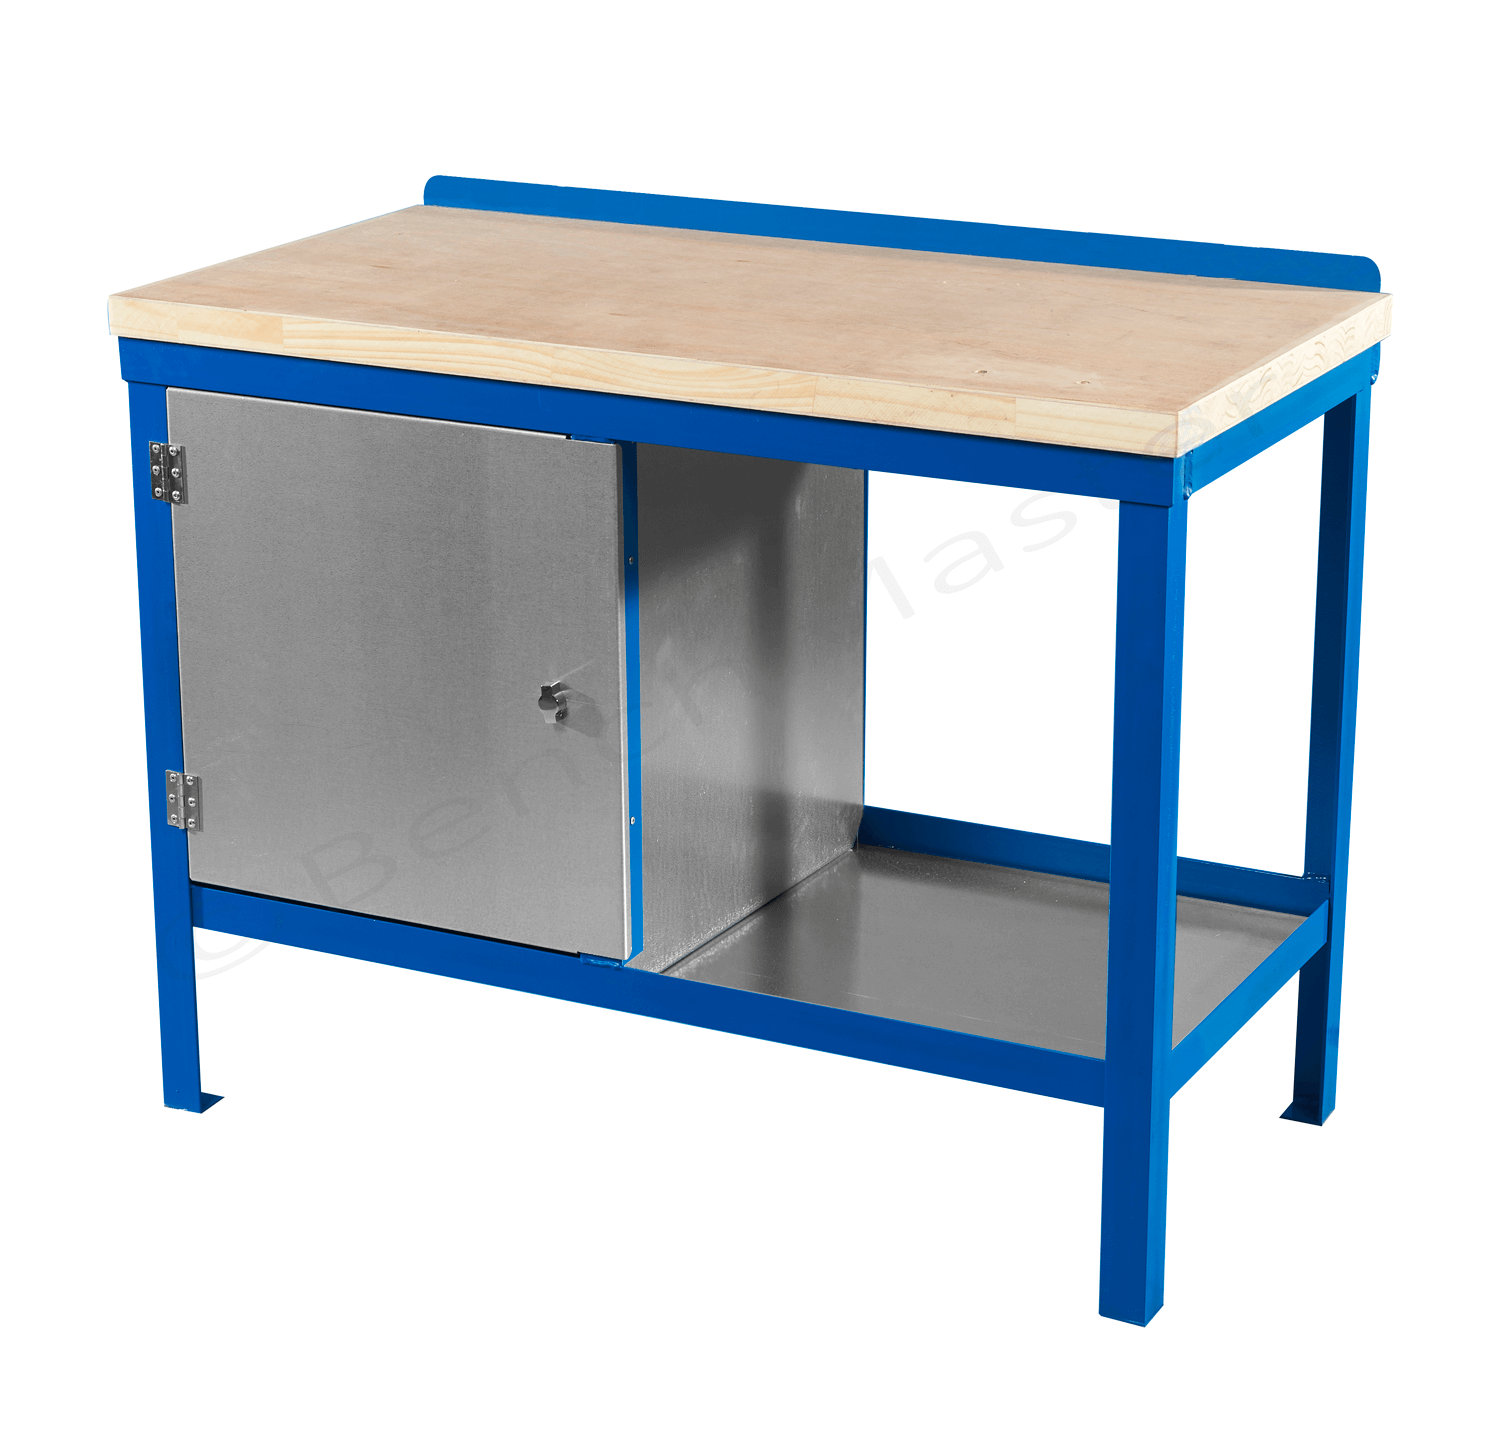 Institutional Heavy Duty Industrial Workbenches